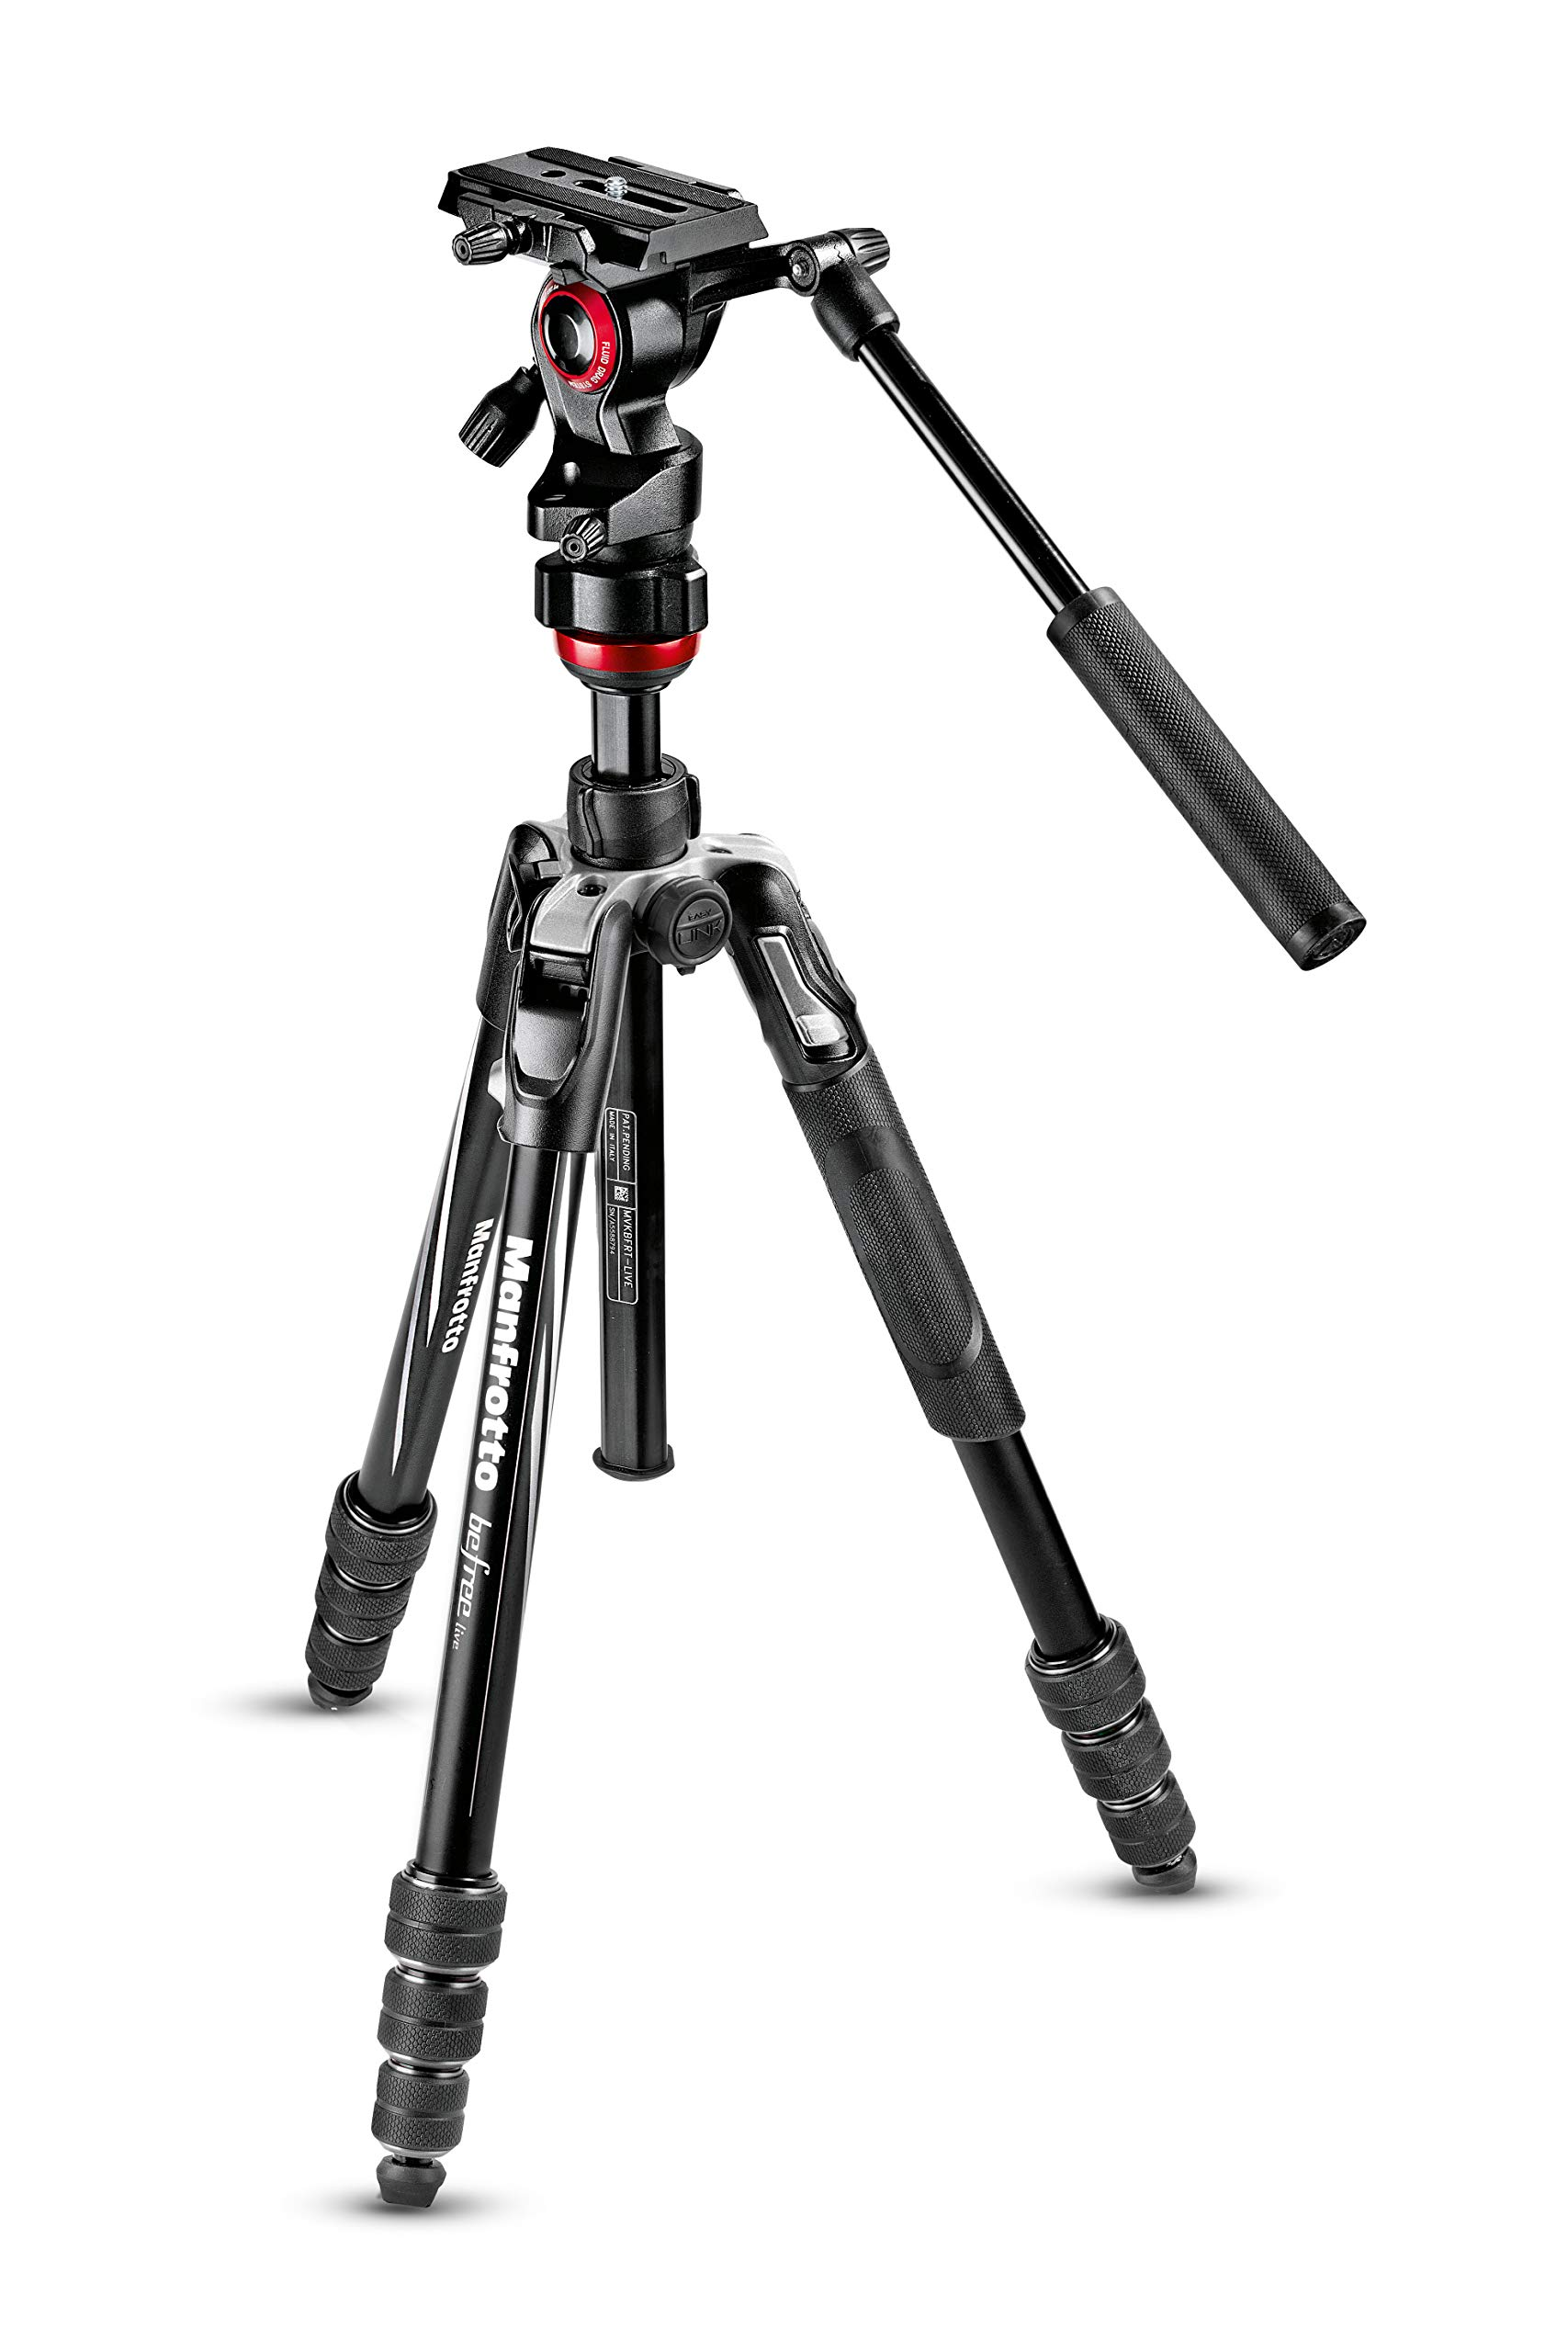 Manfrotto Travel Befree Live Aluminium Tripod Twist, Video Head, Black, Compact (MVKBFRT-LIVEUS) by Manfrotto